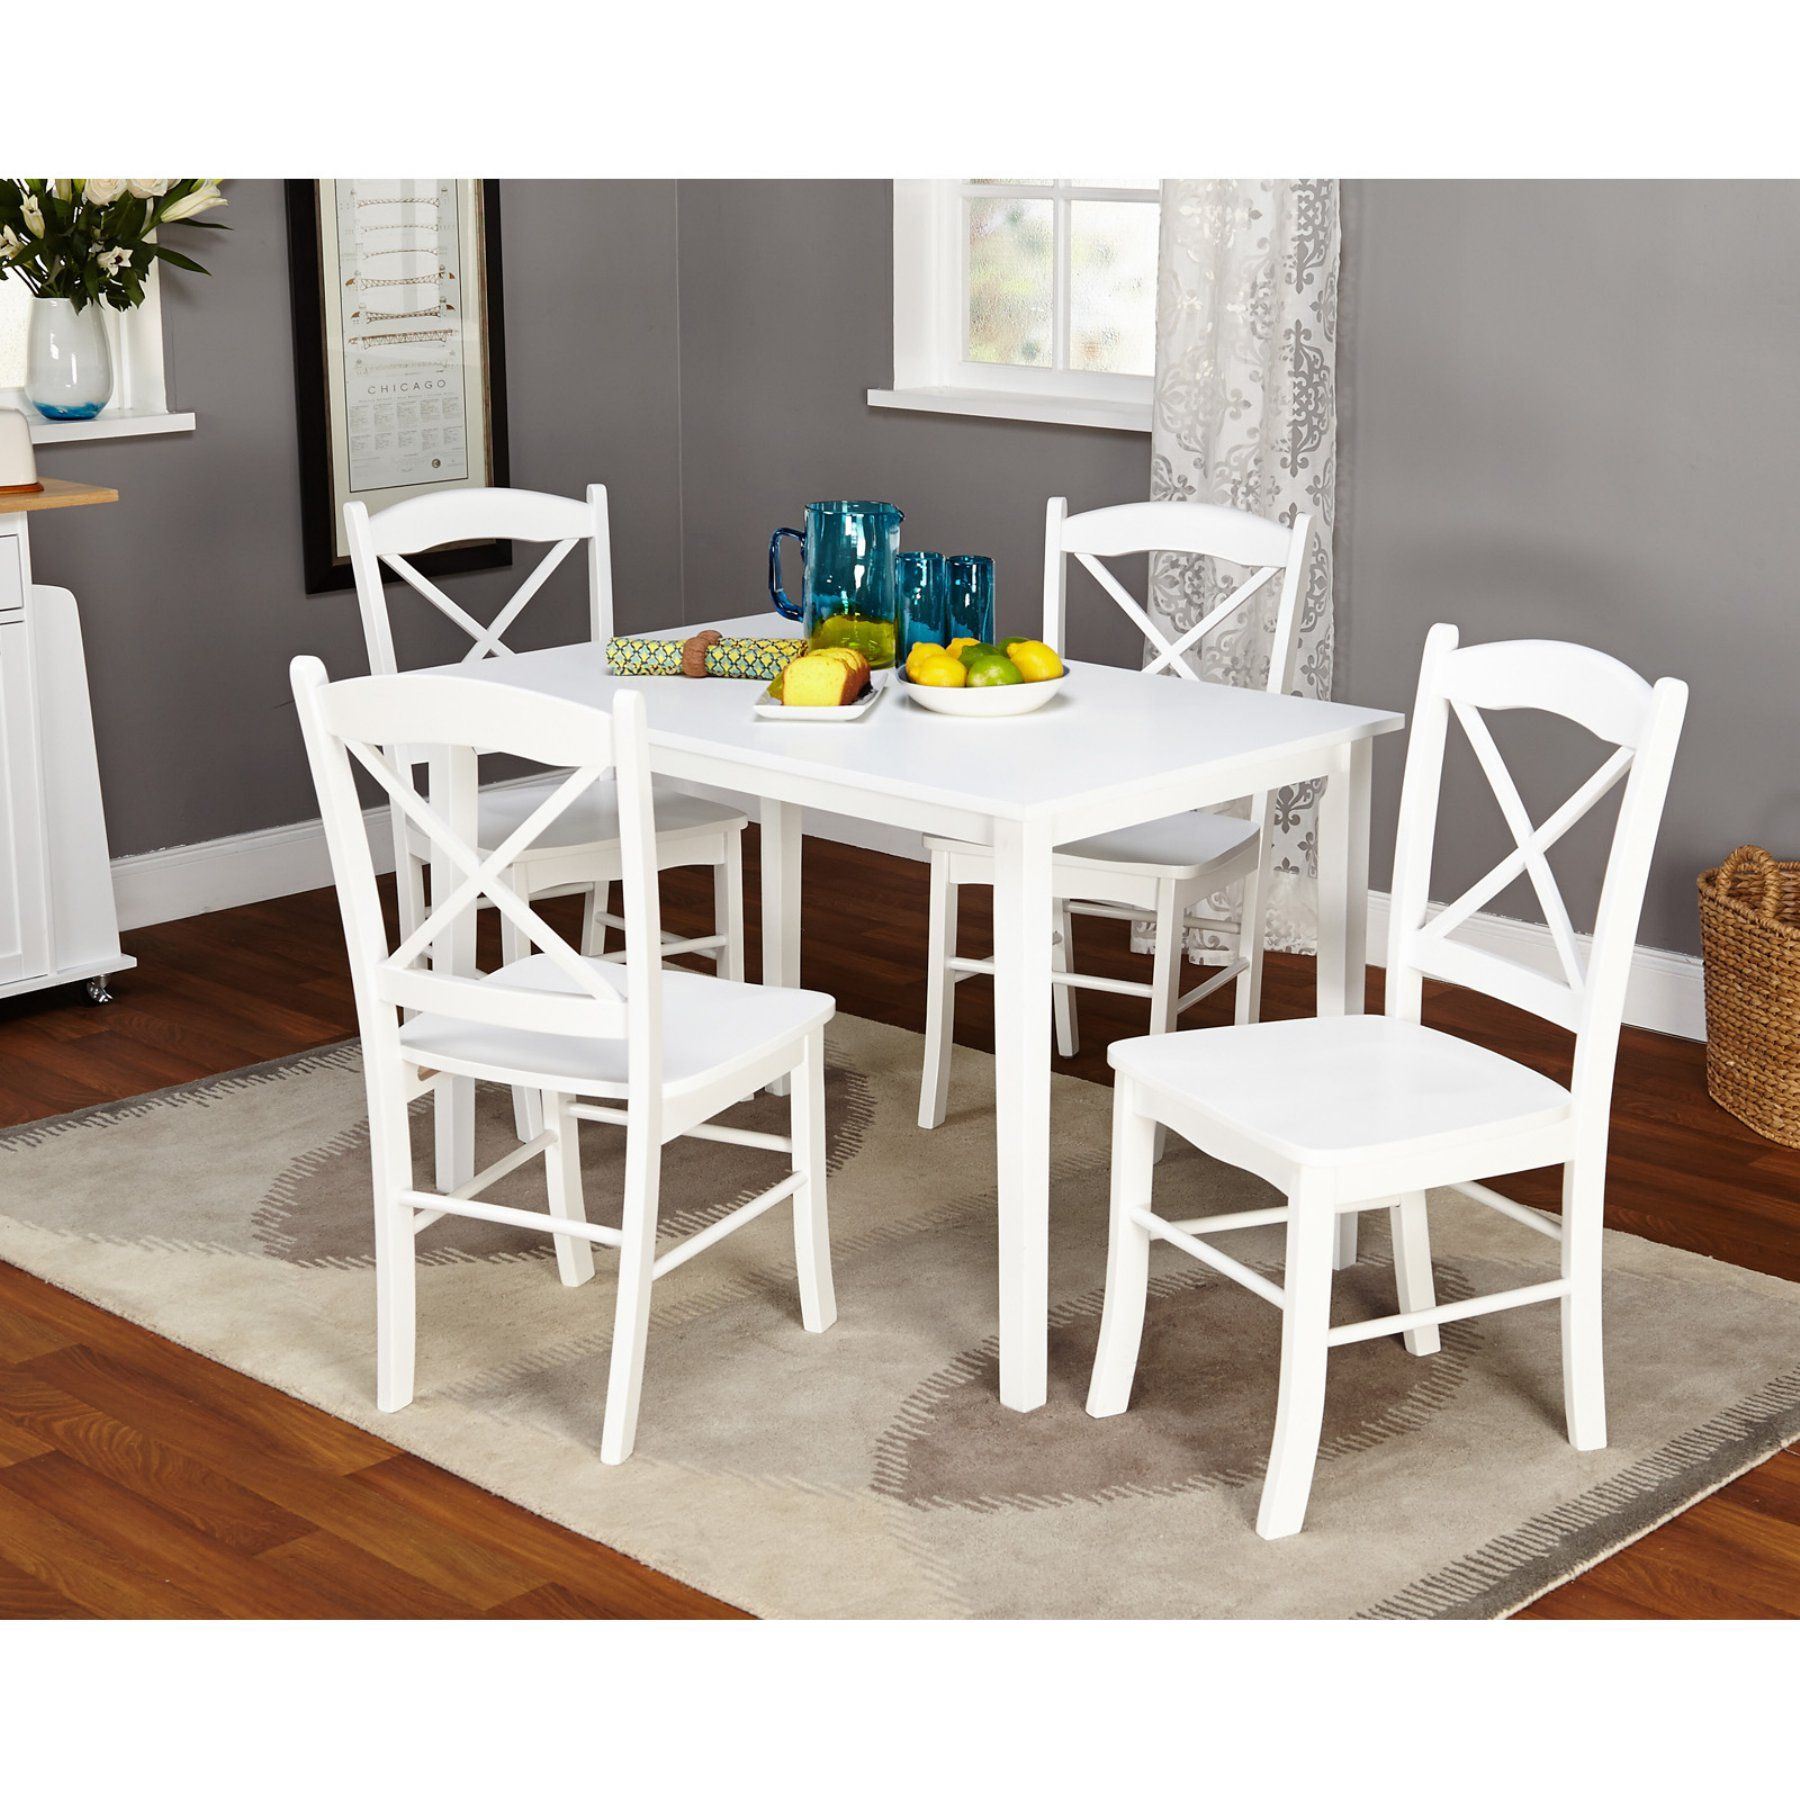 Target Marketing Systems Kaitlyn 5 Piece Dining Table Set